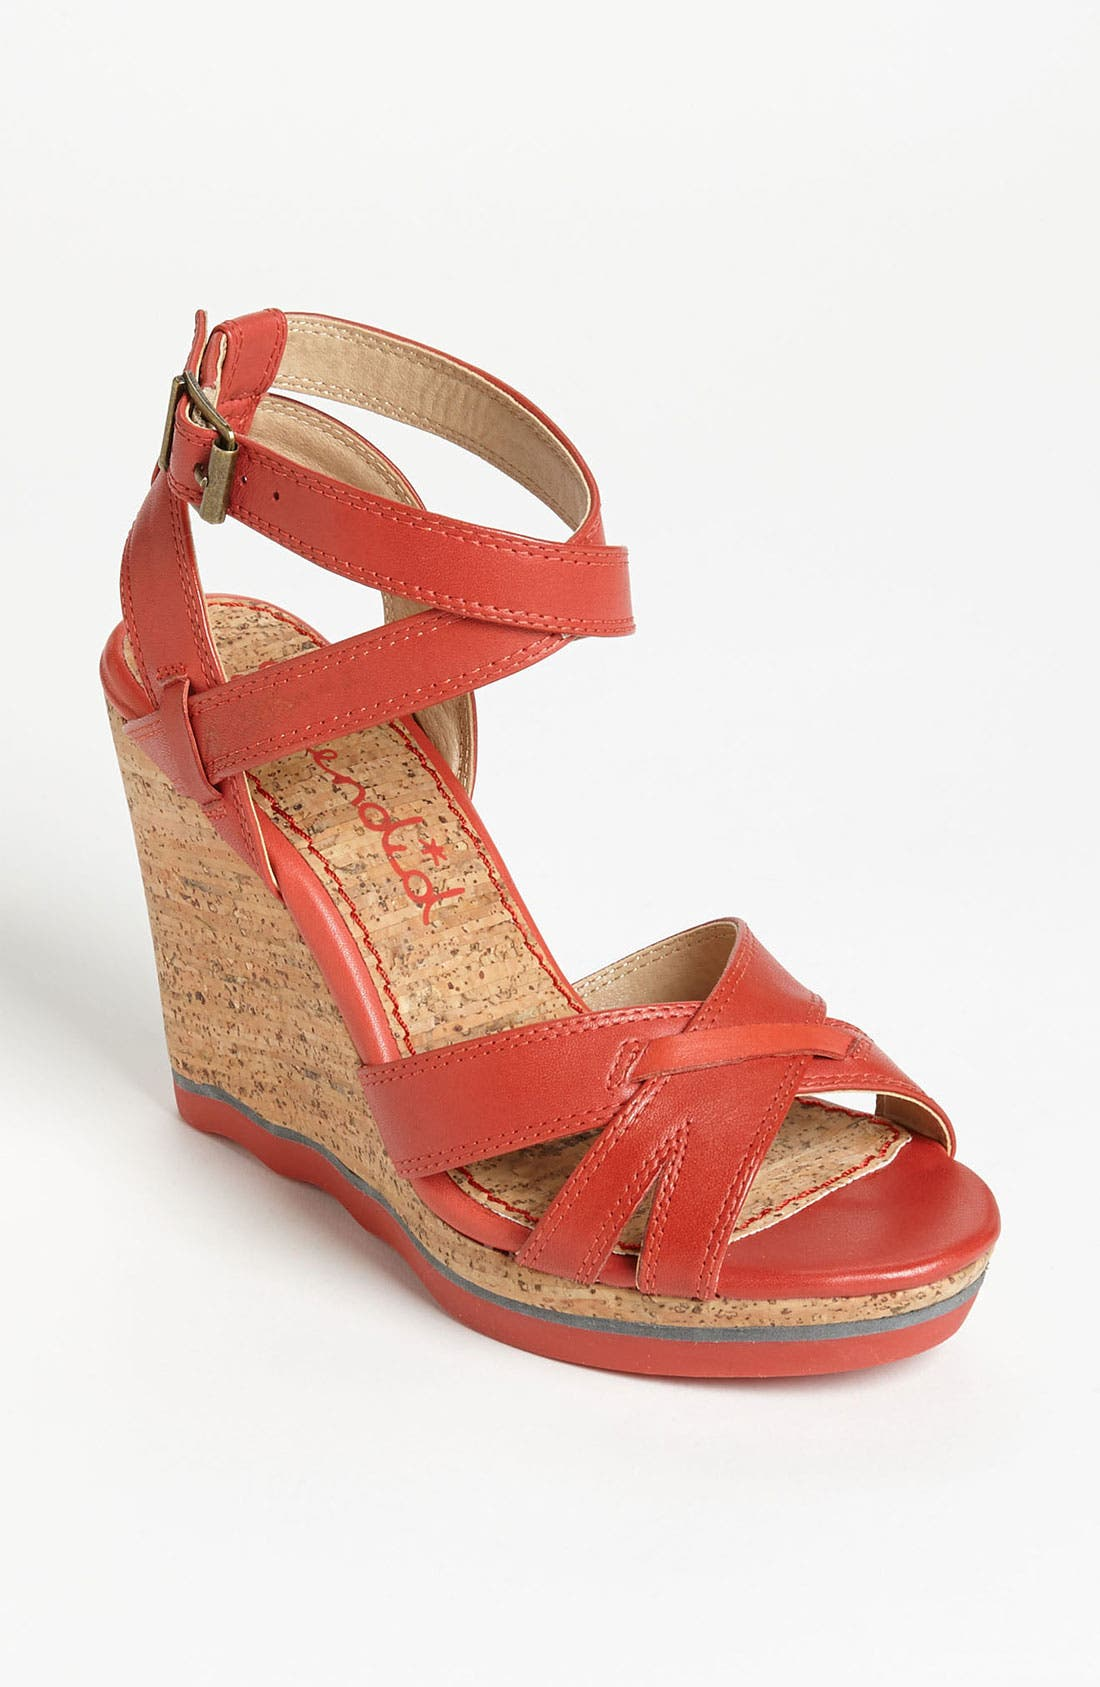 Alternate Image 1 Selected - Splendid 'Sage' Sandal